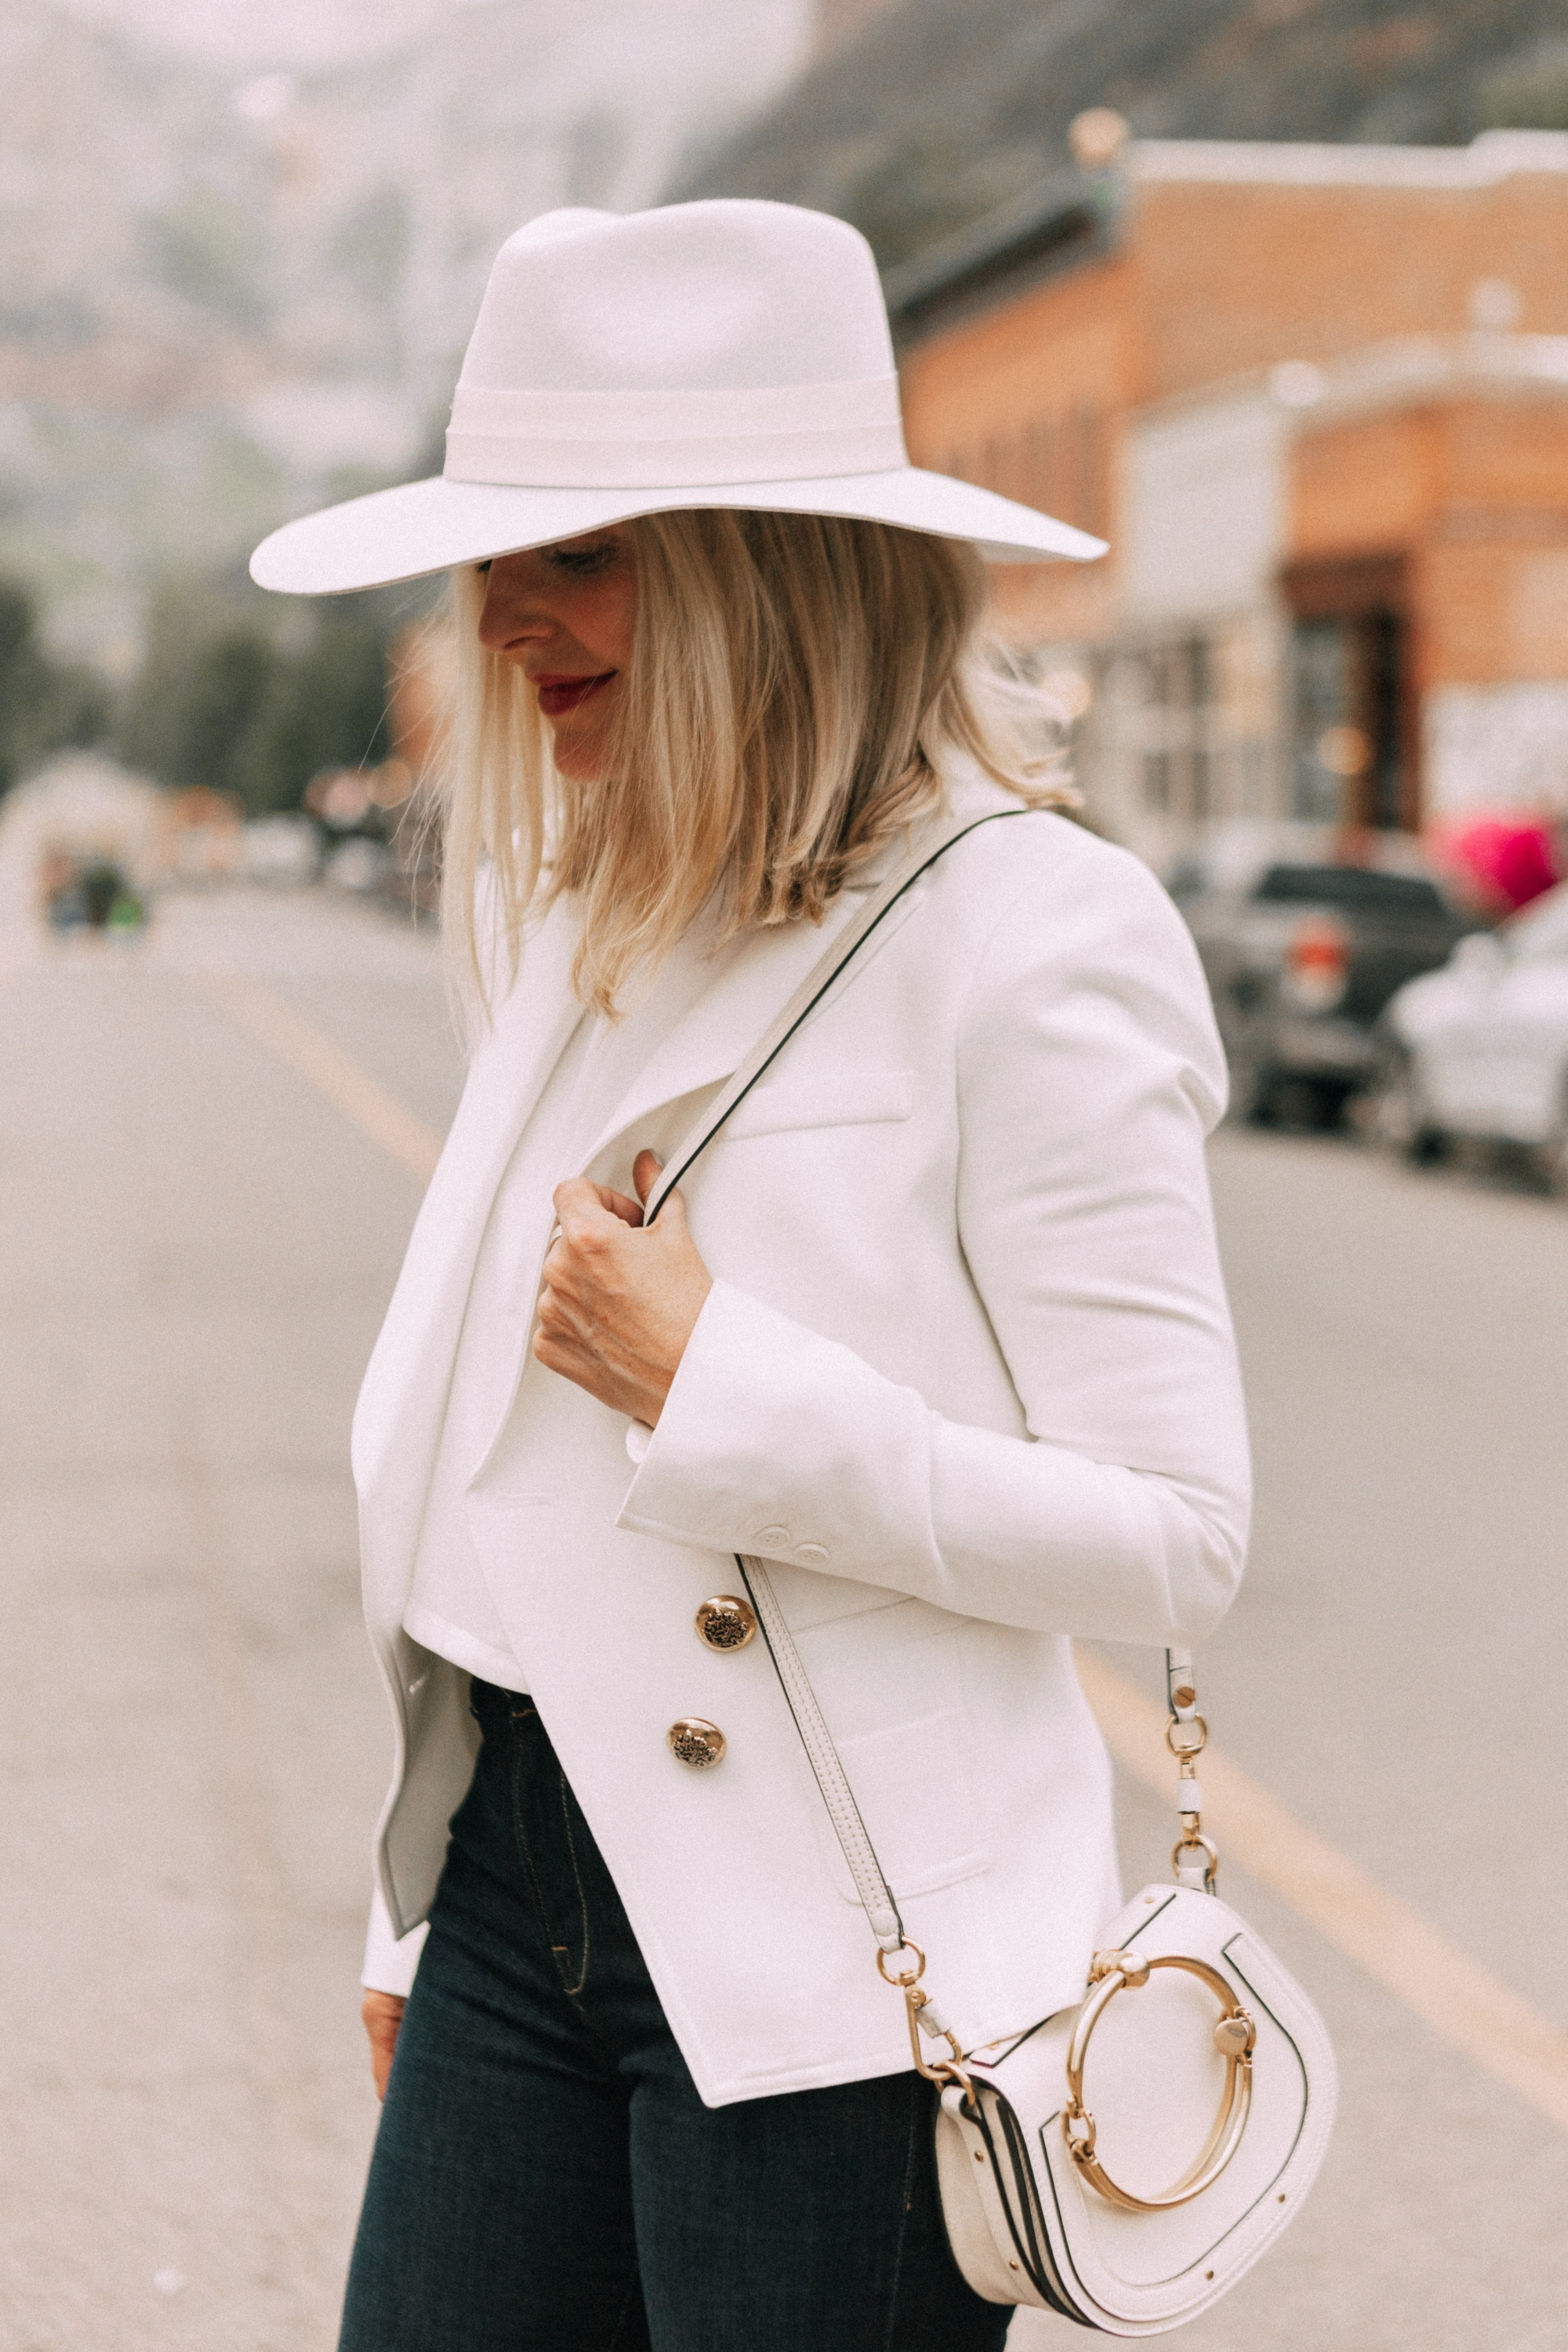 erin busbee wearing a white wool fedora hat with leather hat band fedora white blazer over white top paired with dark skinny jeans